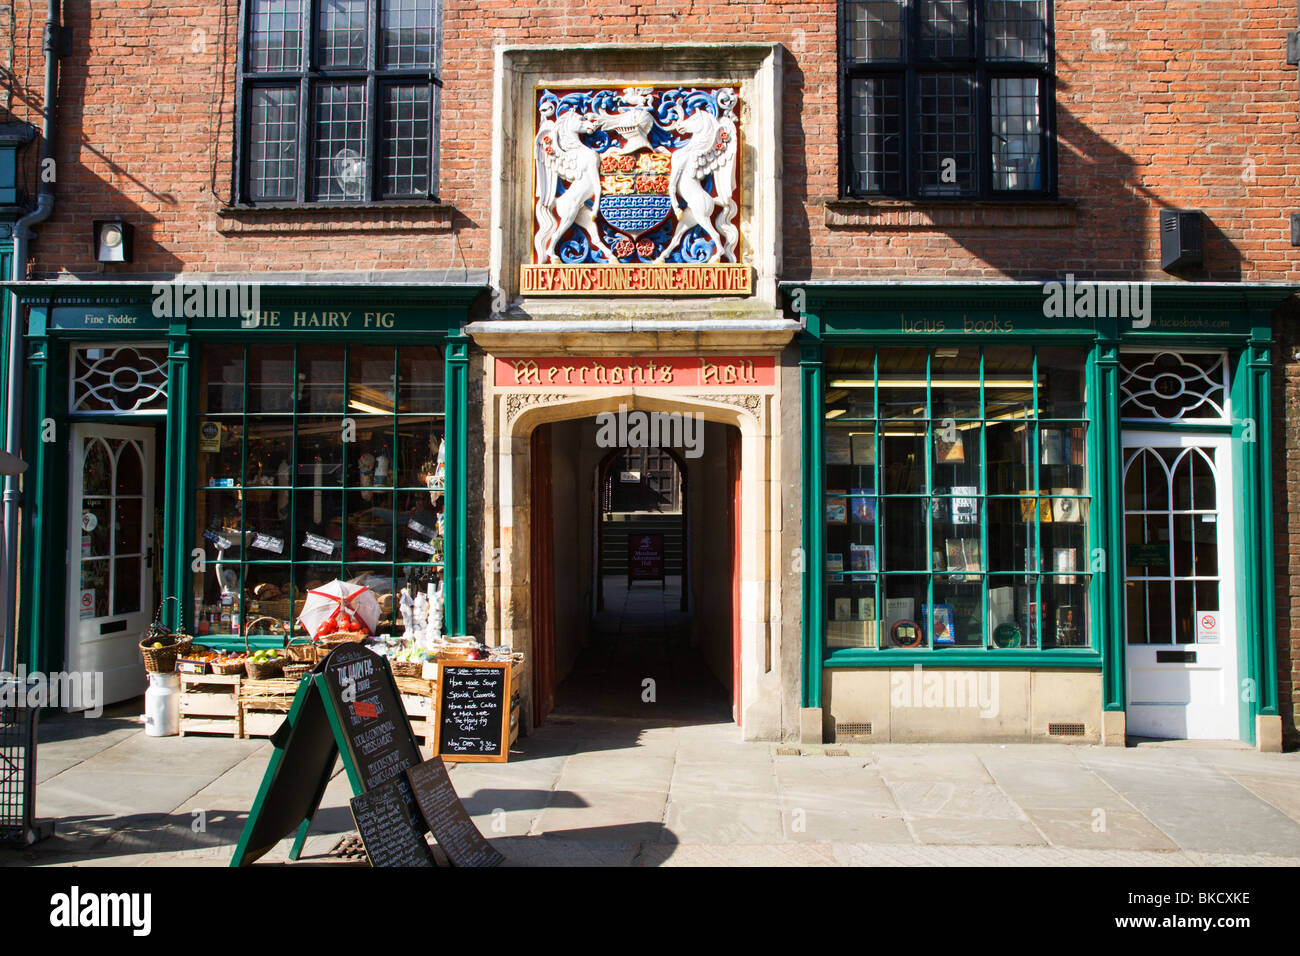 Merchant Adventurers Hall Entrance on Fossgate York Yorkshire UK - Stock Image